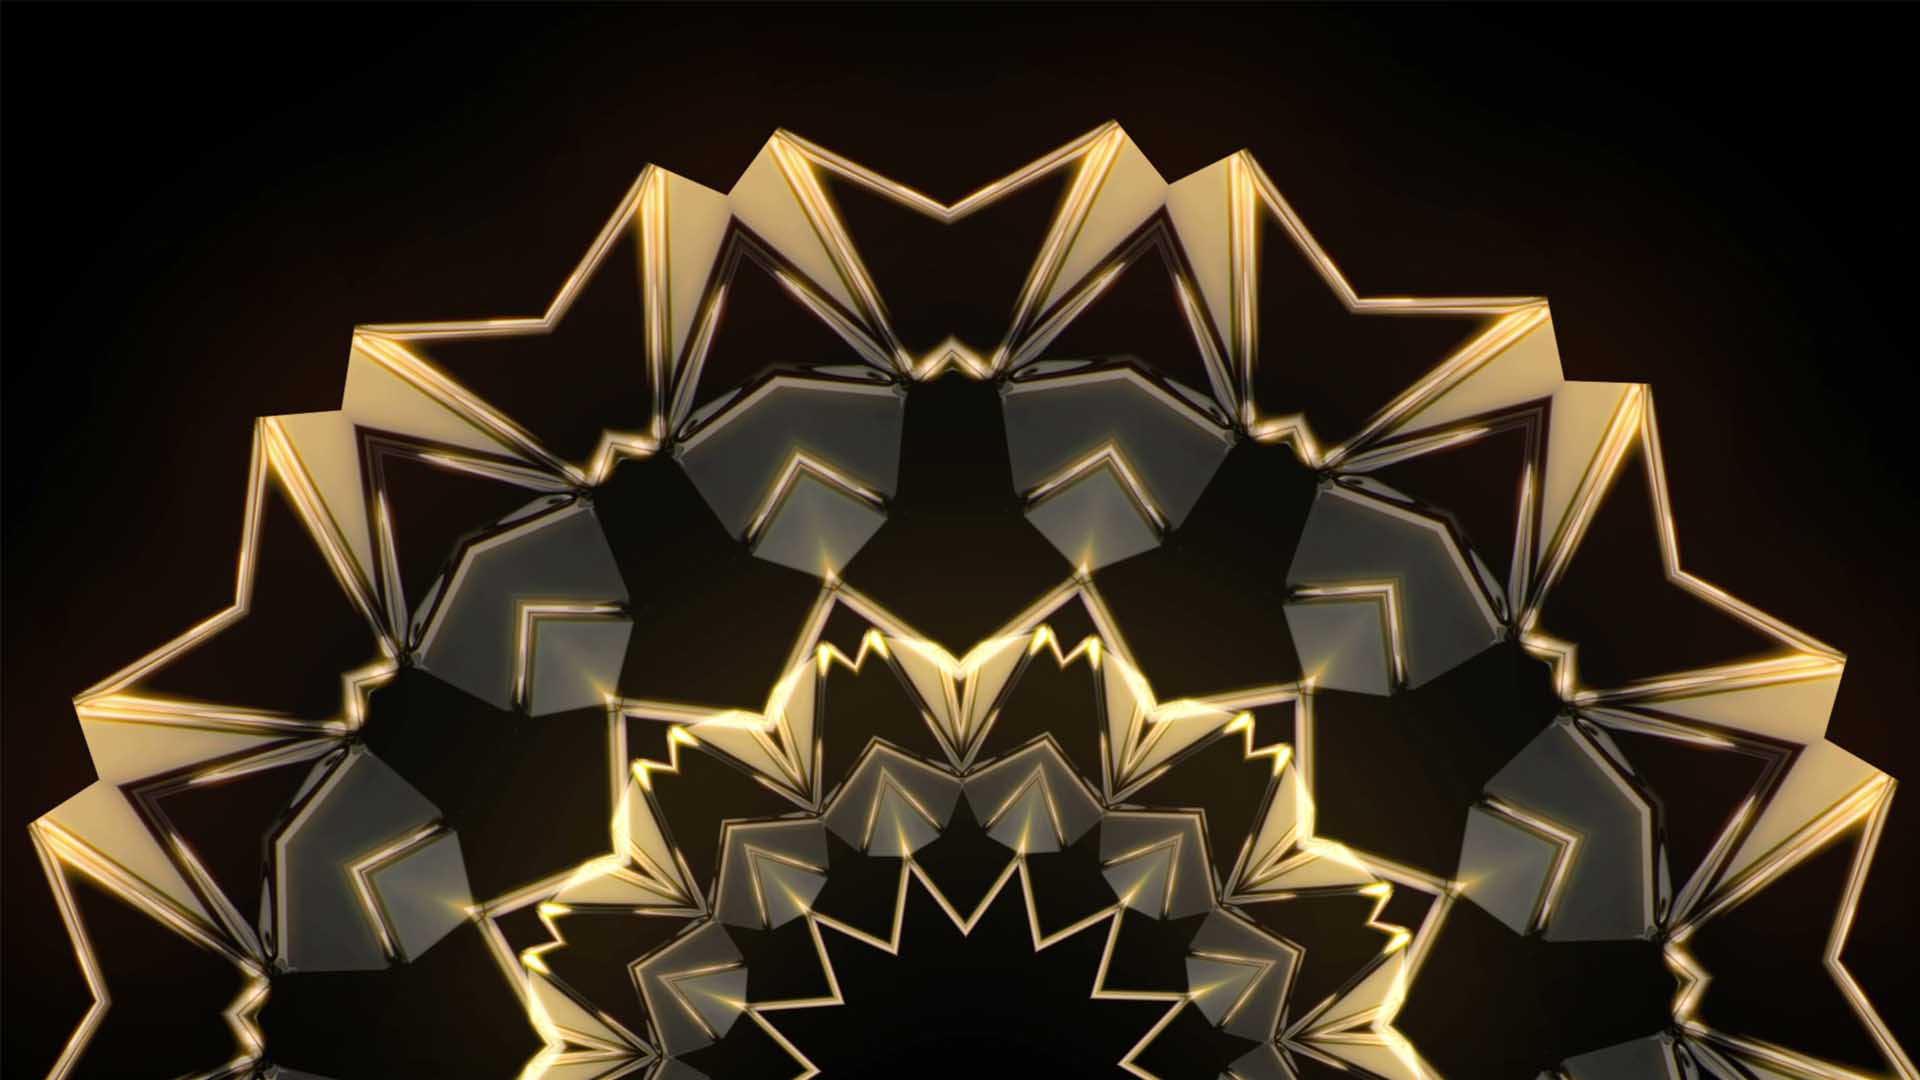 gold wallpaper video loop hd